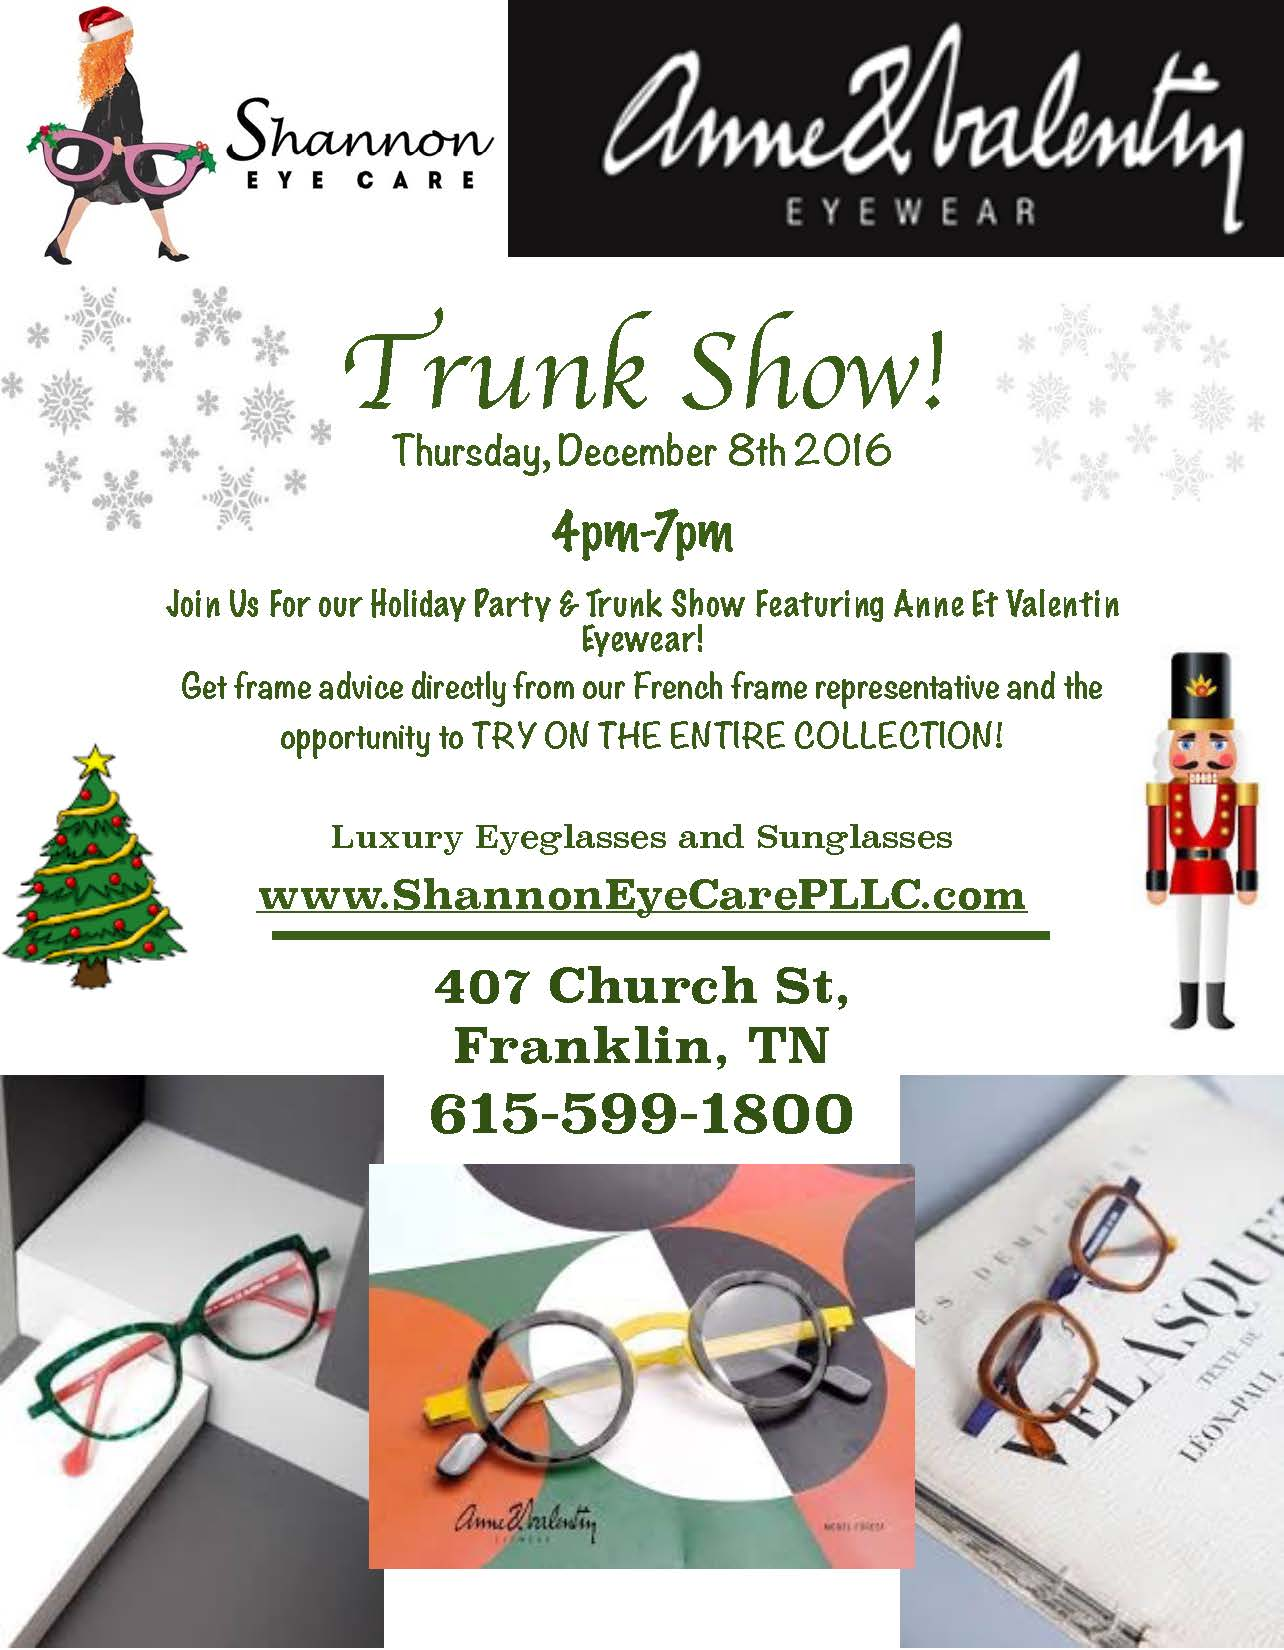 shannon-eye-care-trunk-show-2016-002